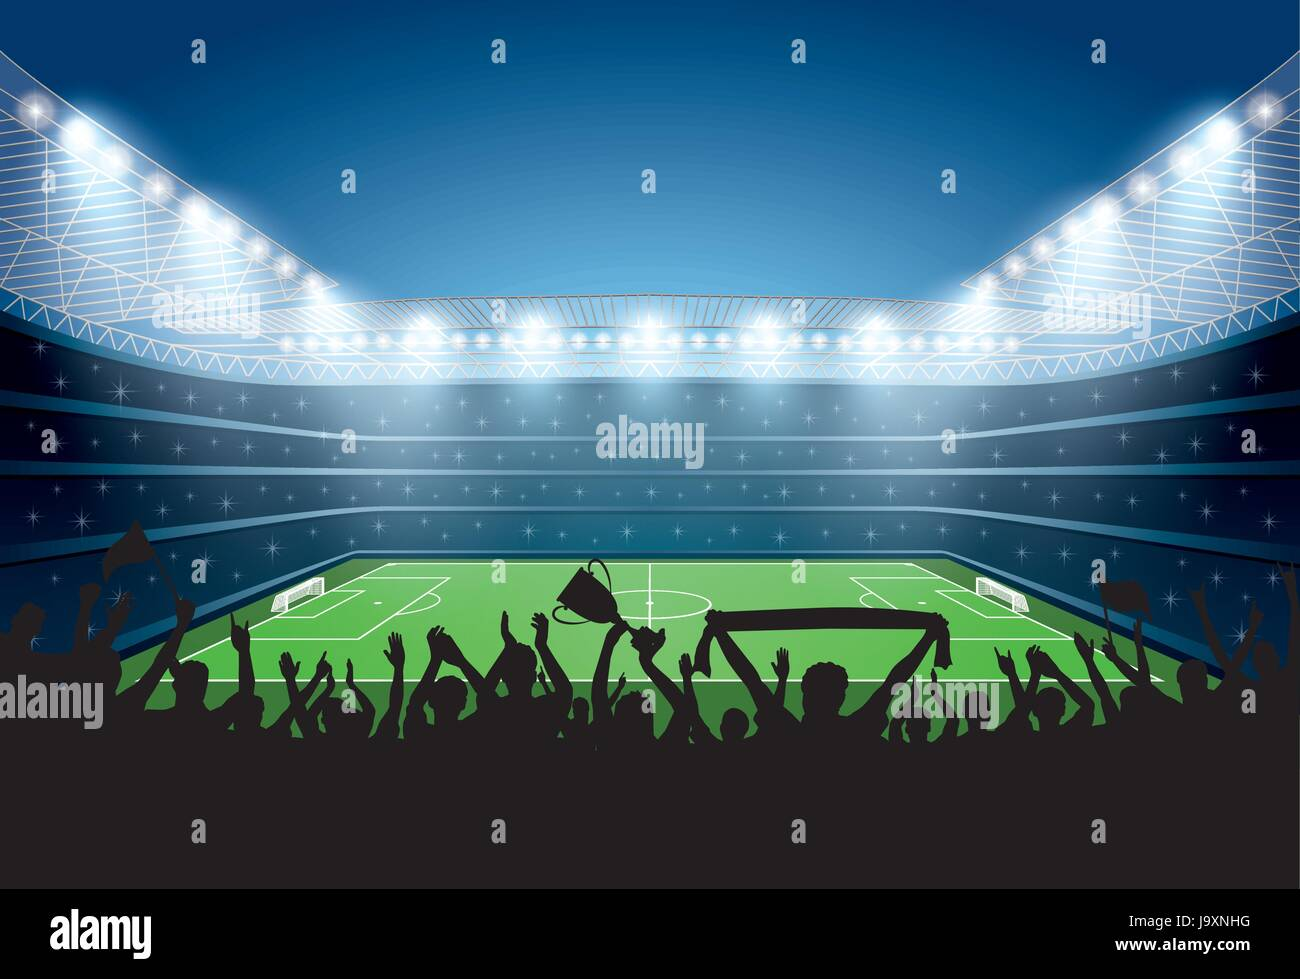 Excited crowd of people at a soccer stadium. Football stadium. Soccer arena. - Stock Vector